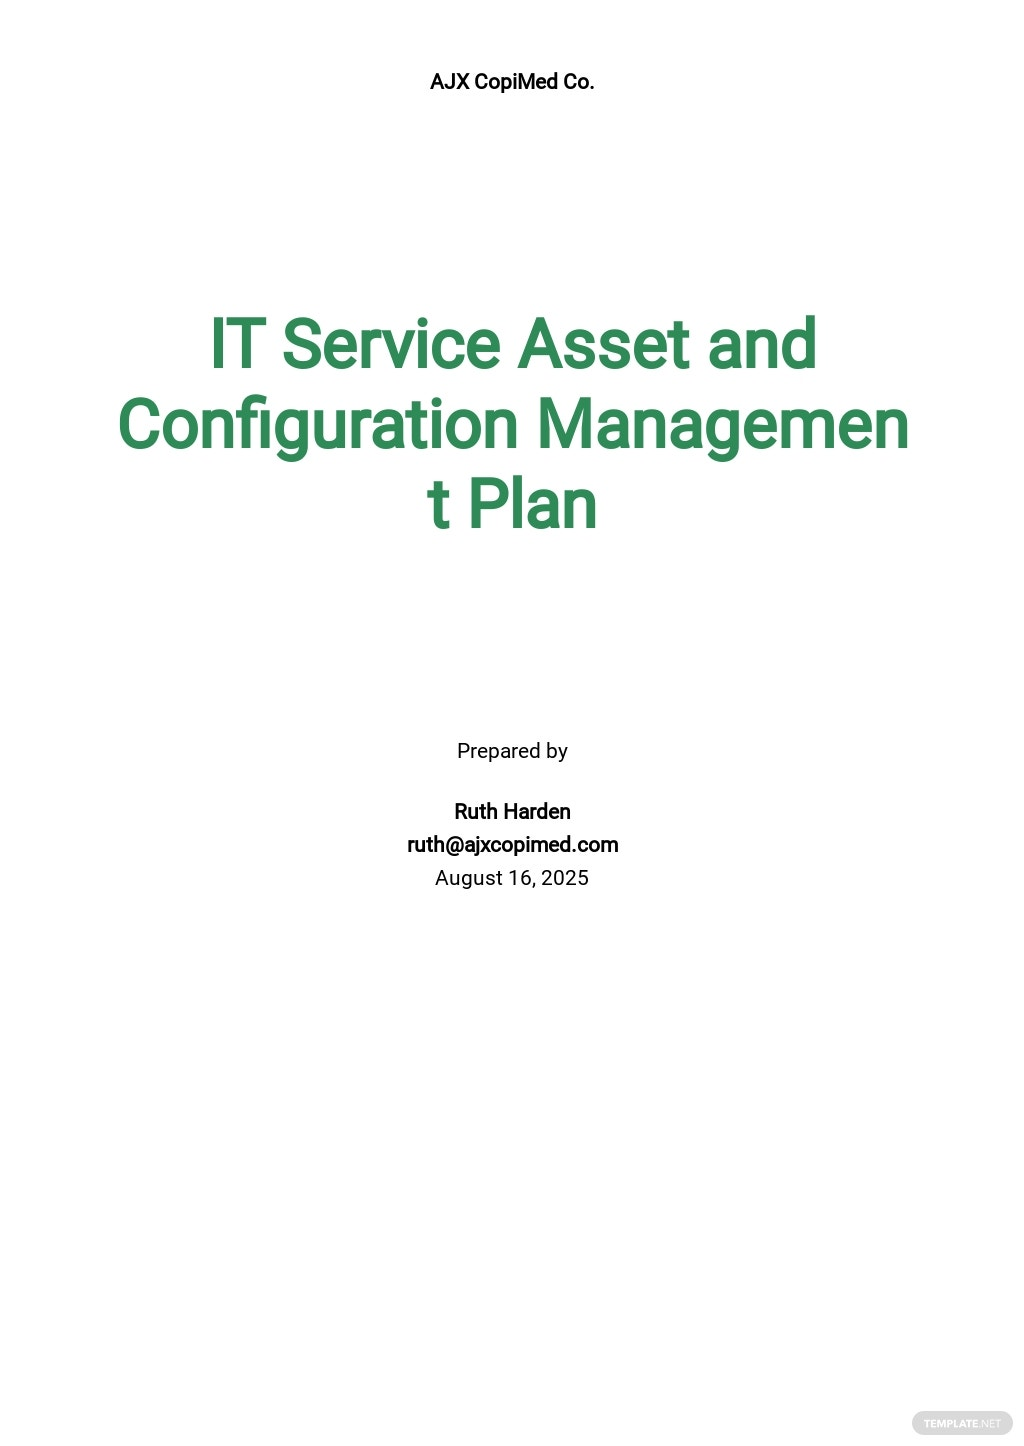 IT Service Asset and Configuration Management Plan Template [Free PDF] - Google Docs, Word